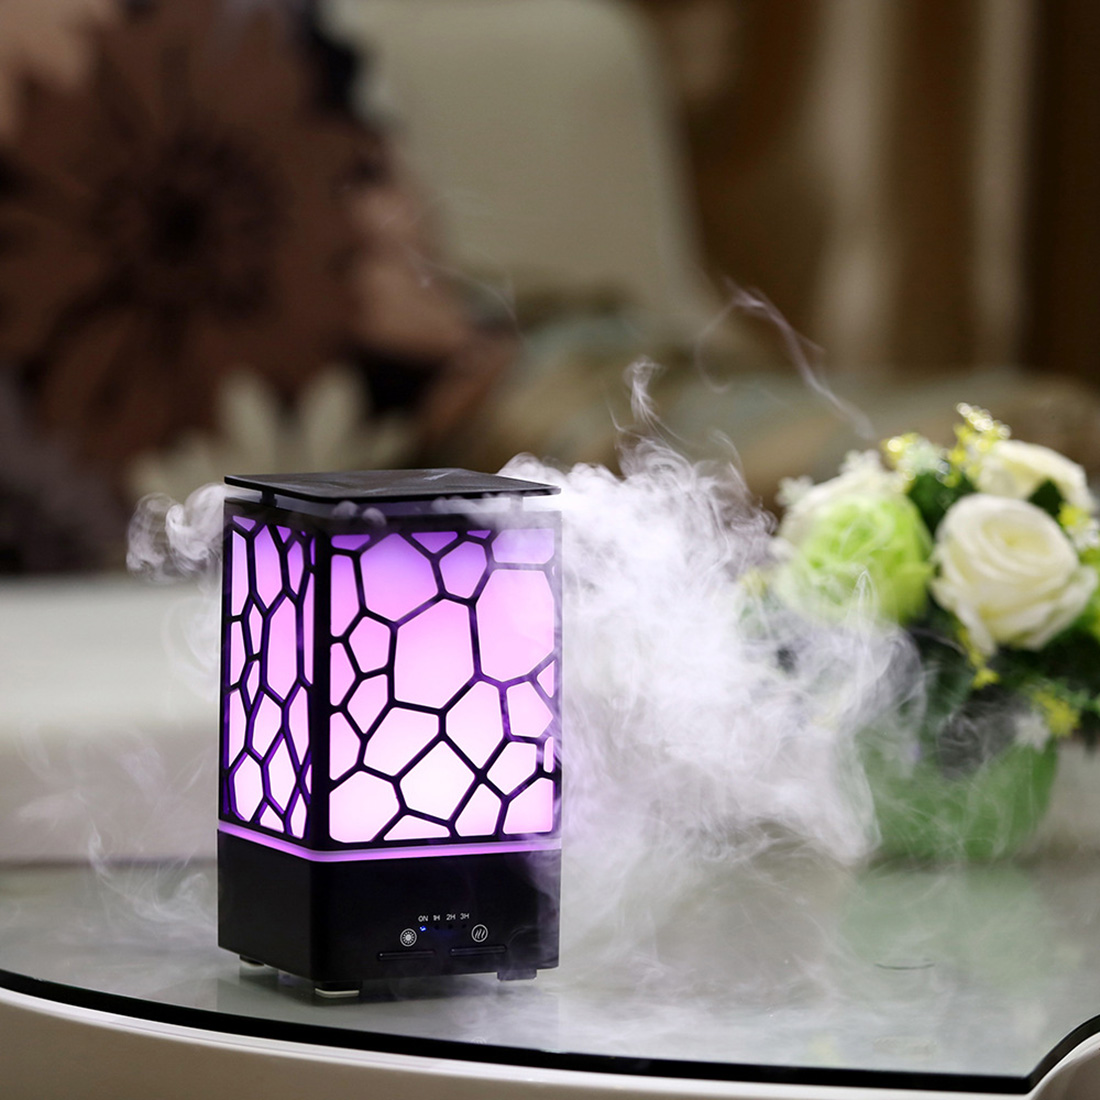 Essential Oil Burner Aromatherapy Burner Humidifier Spray Incensory